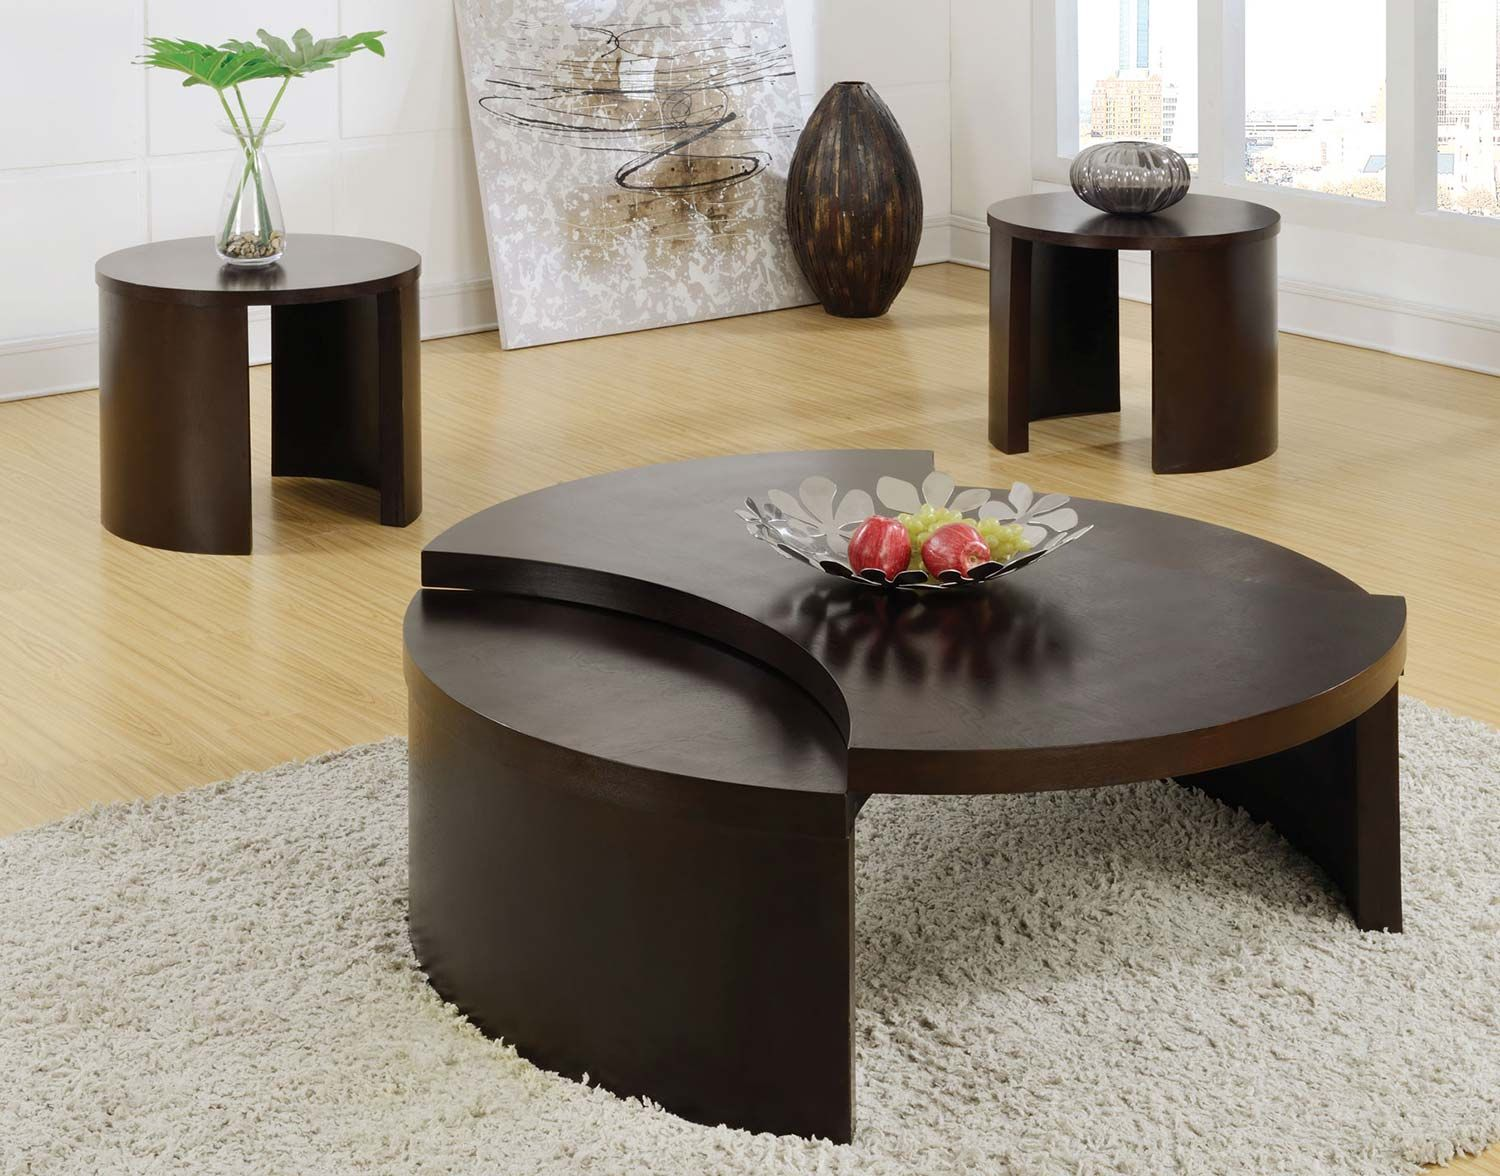 Coaster 70273 Occasional Set - Cappuccino - Unique bow-tie shaped Coffee table in a cappuccino Finish has a swivel feature to reveal storage space underneath. Pair with a complementary round End table.